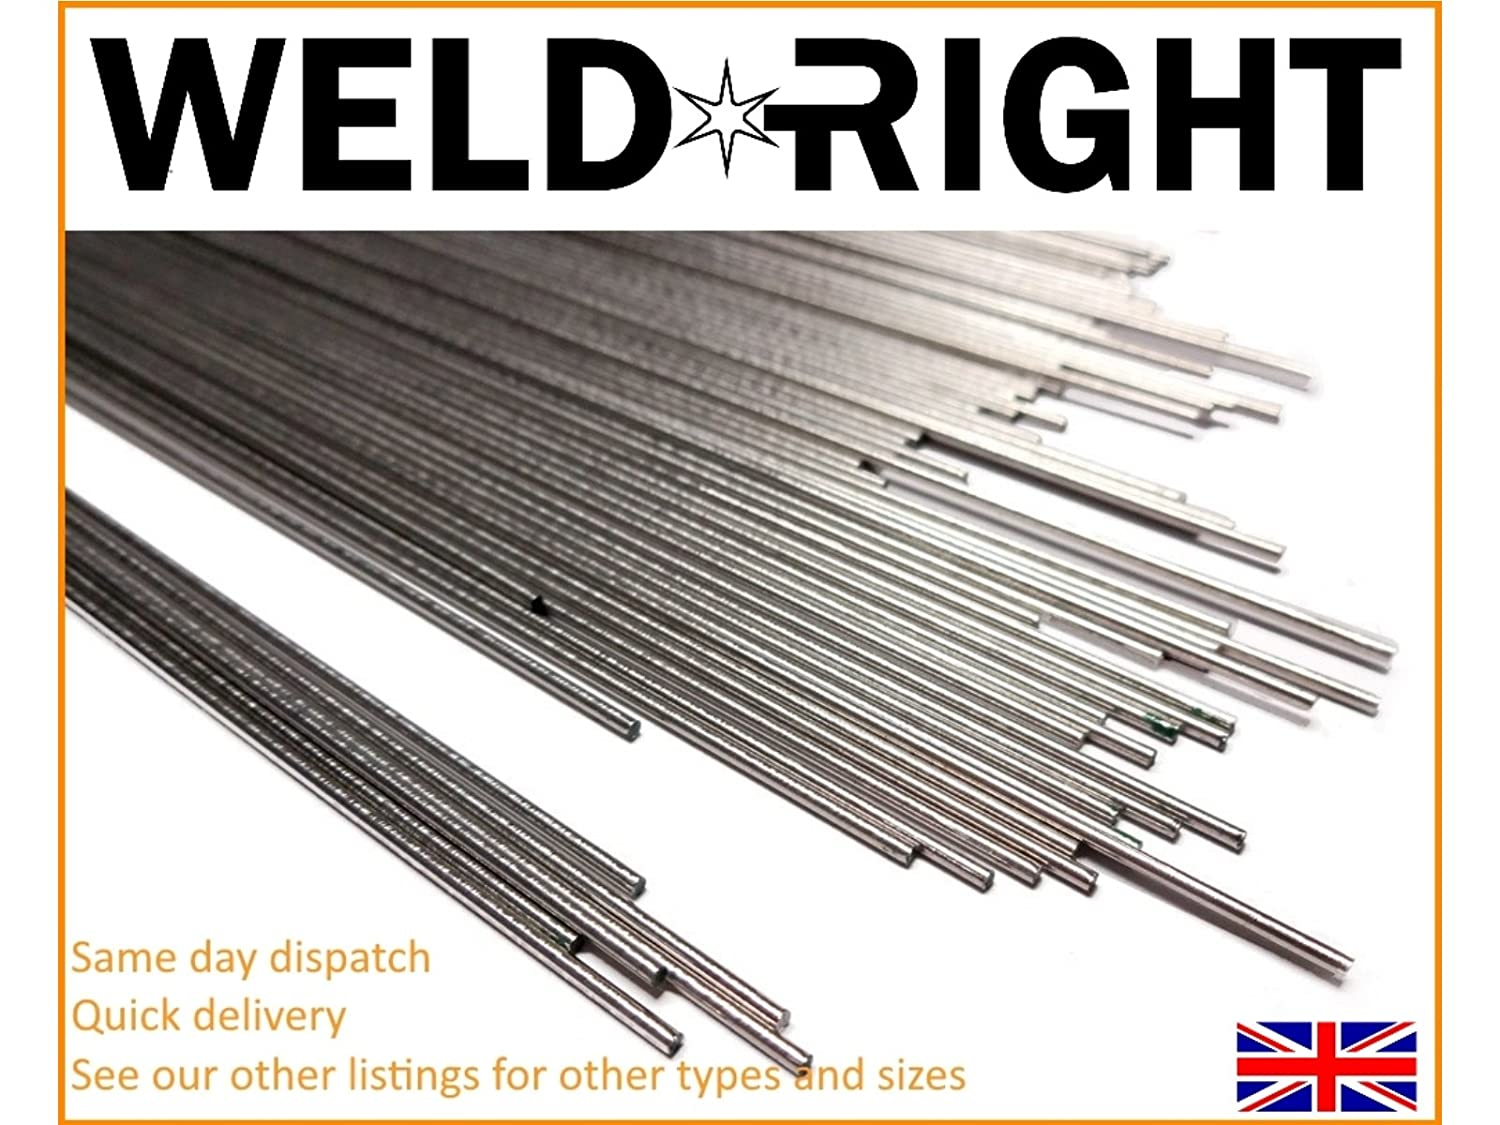 Weldrite 50x Stainless Steel ER308L SS Tig Filler Welding Rods - 1.0mm